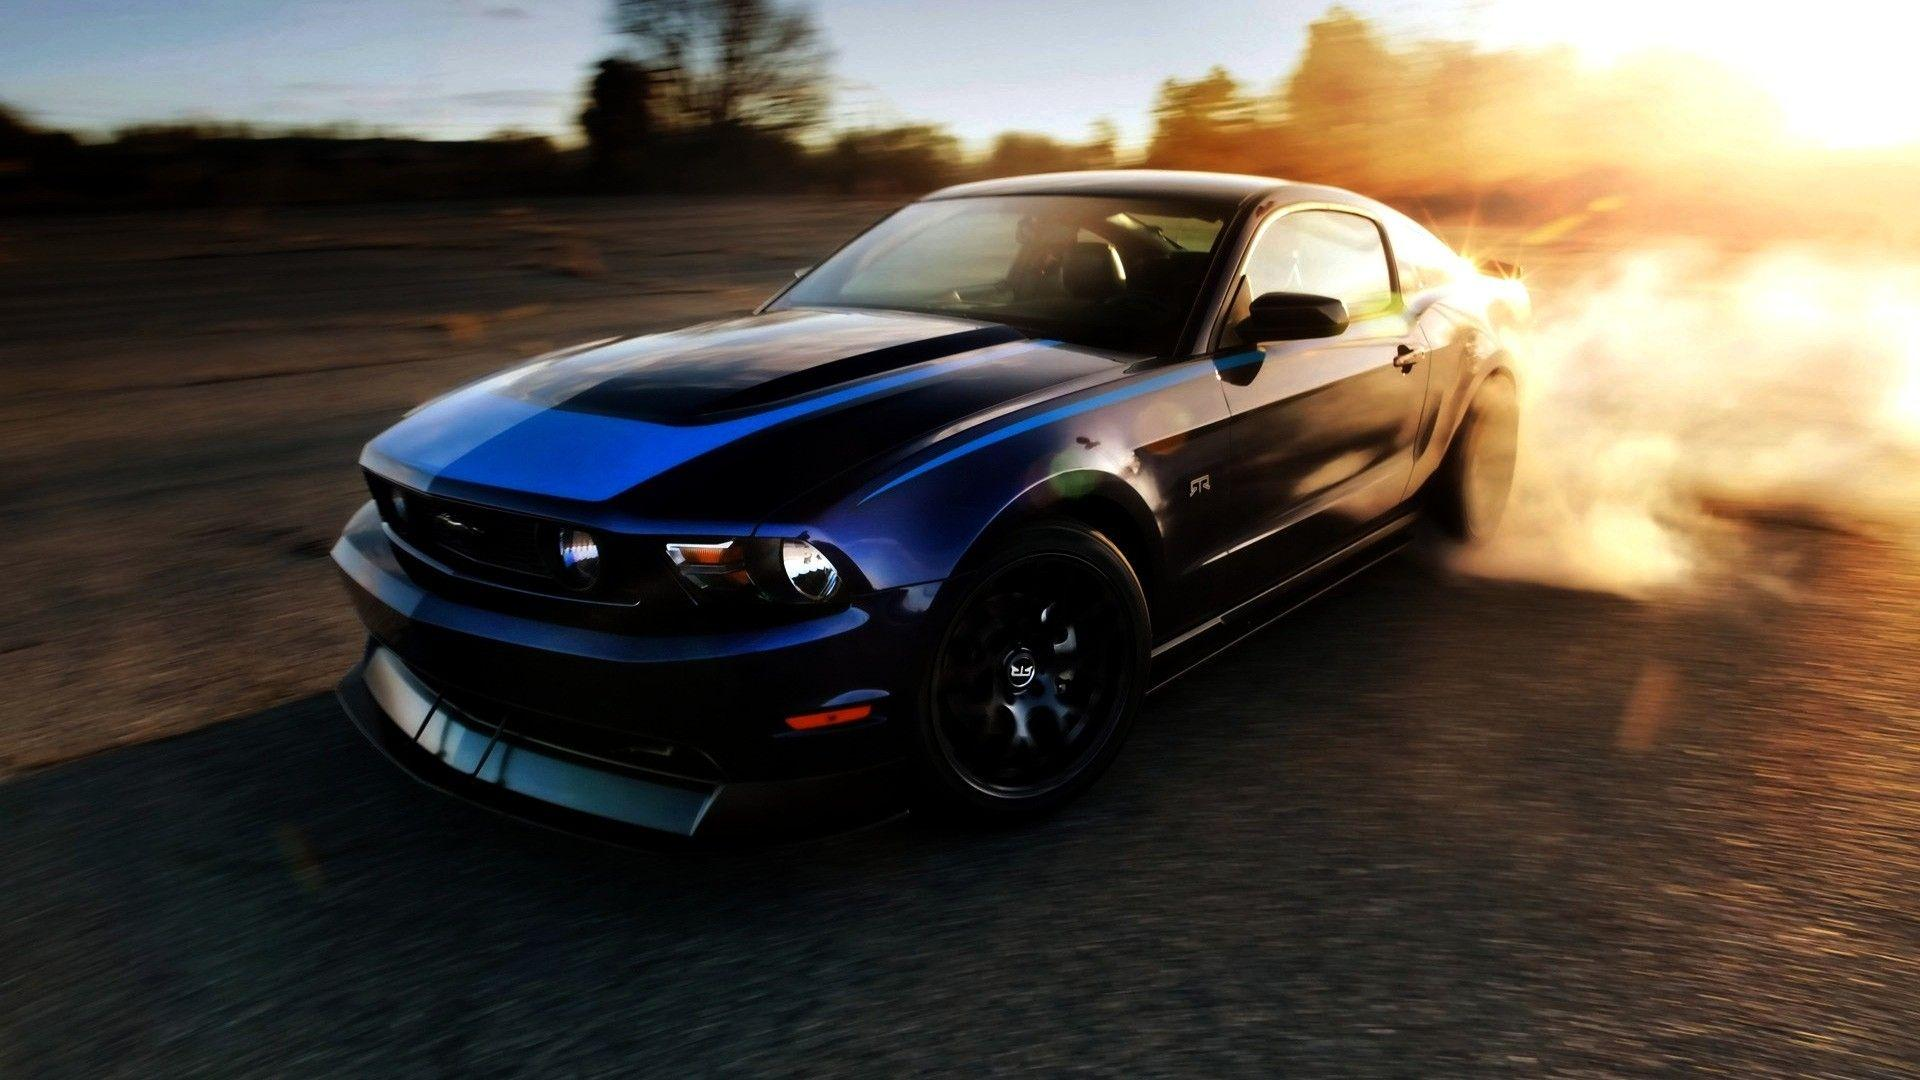 2015 Ford Mustang Shelby Wallpapers - Wallpaper Cave